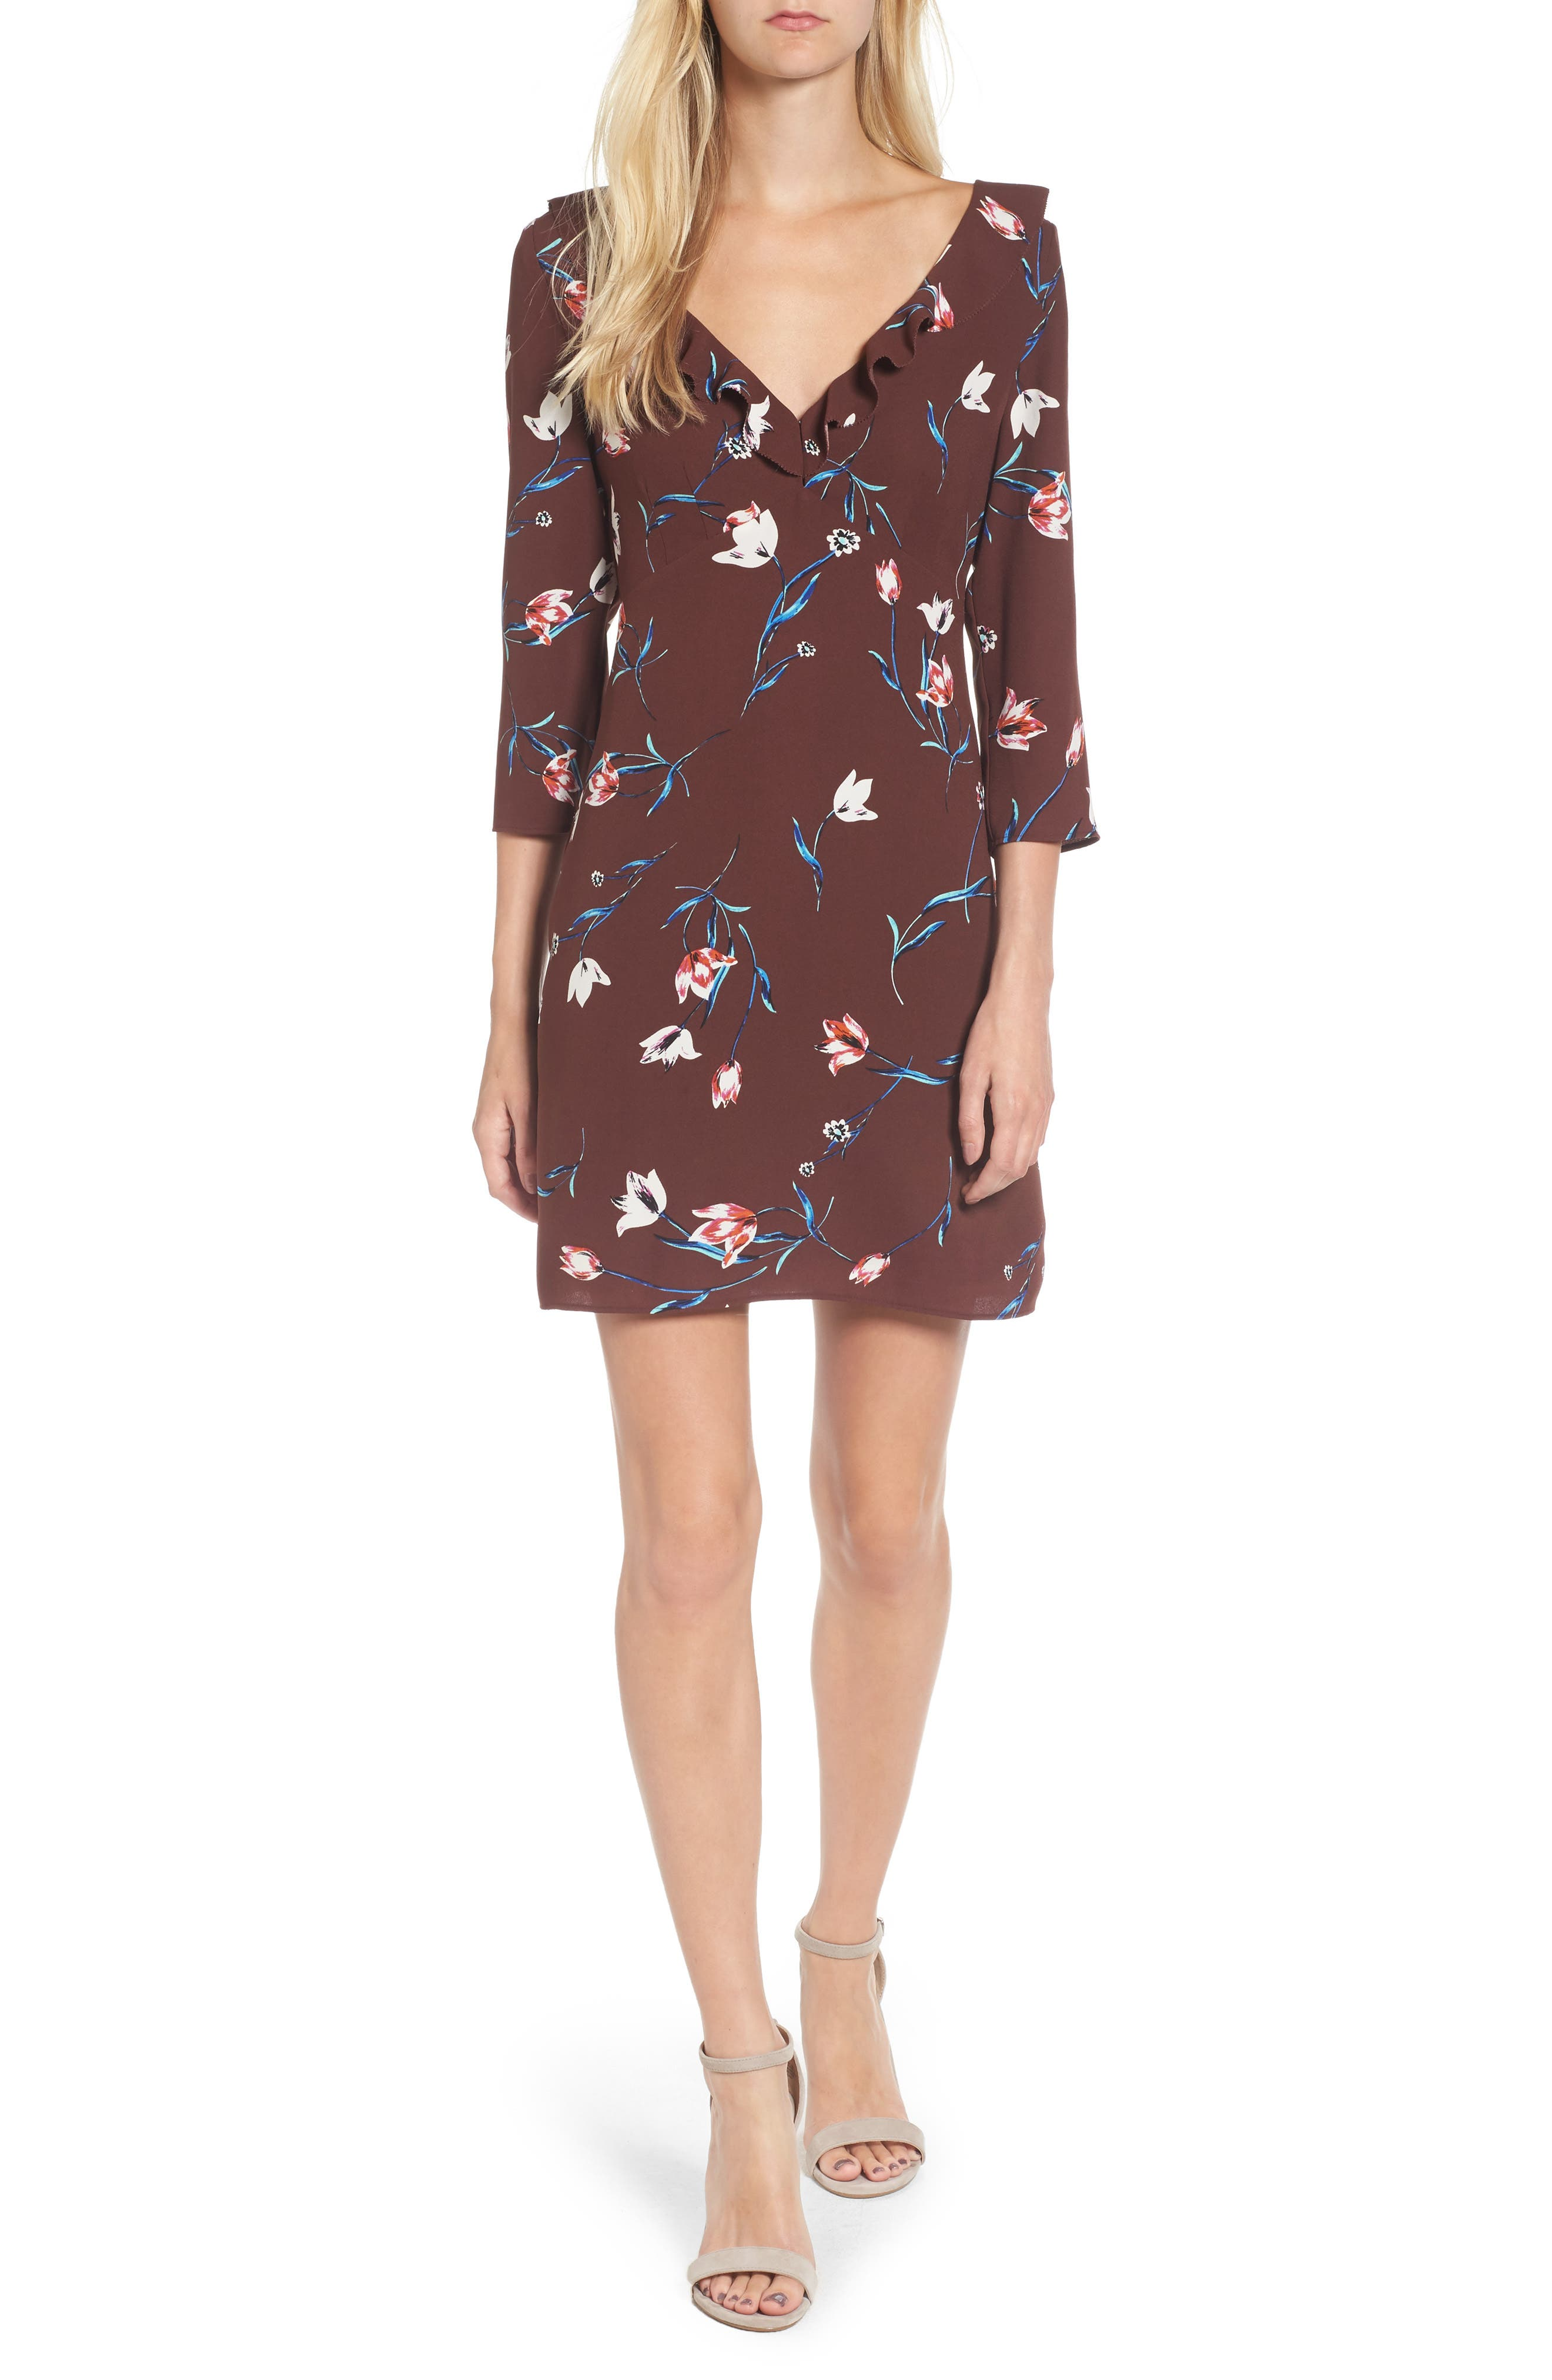 cooper & ella Signe Shift Dress